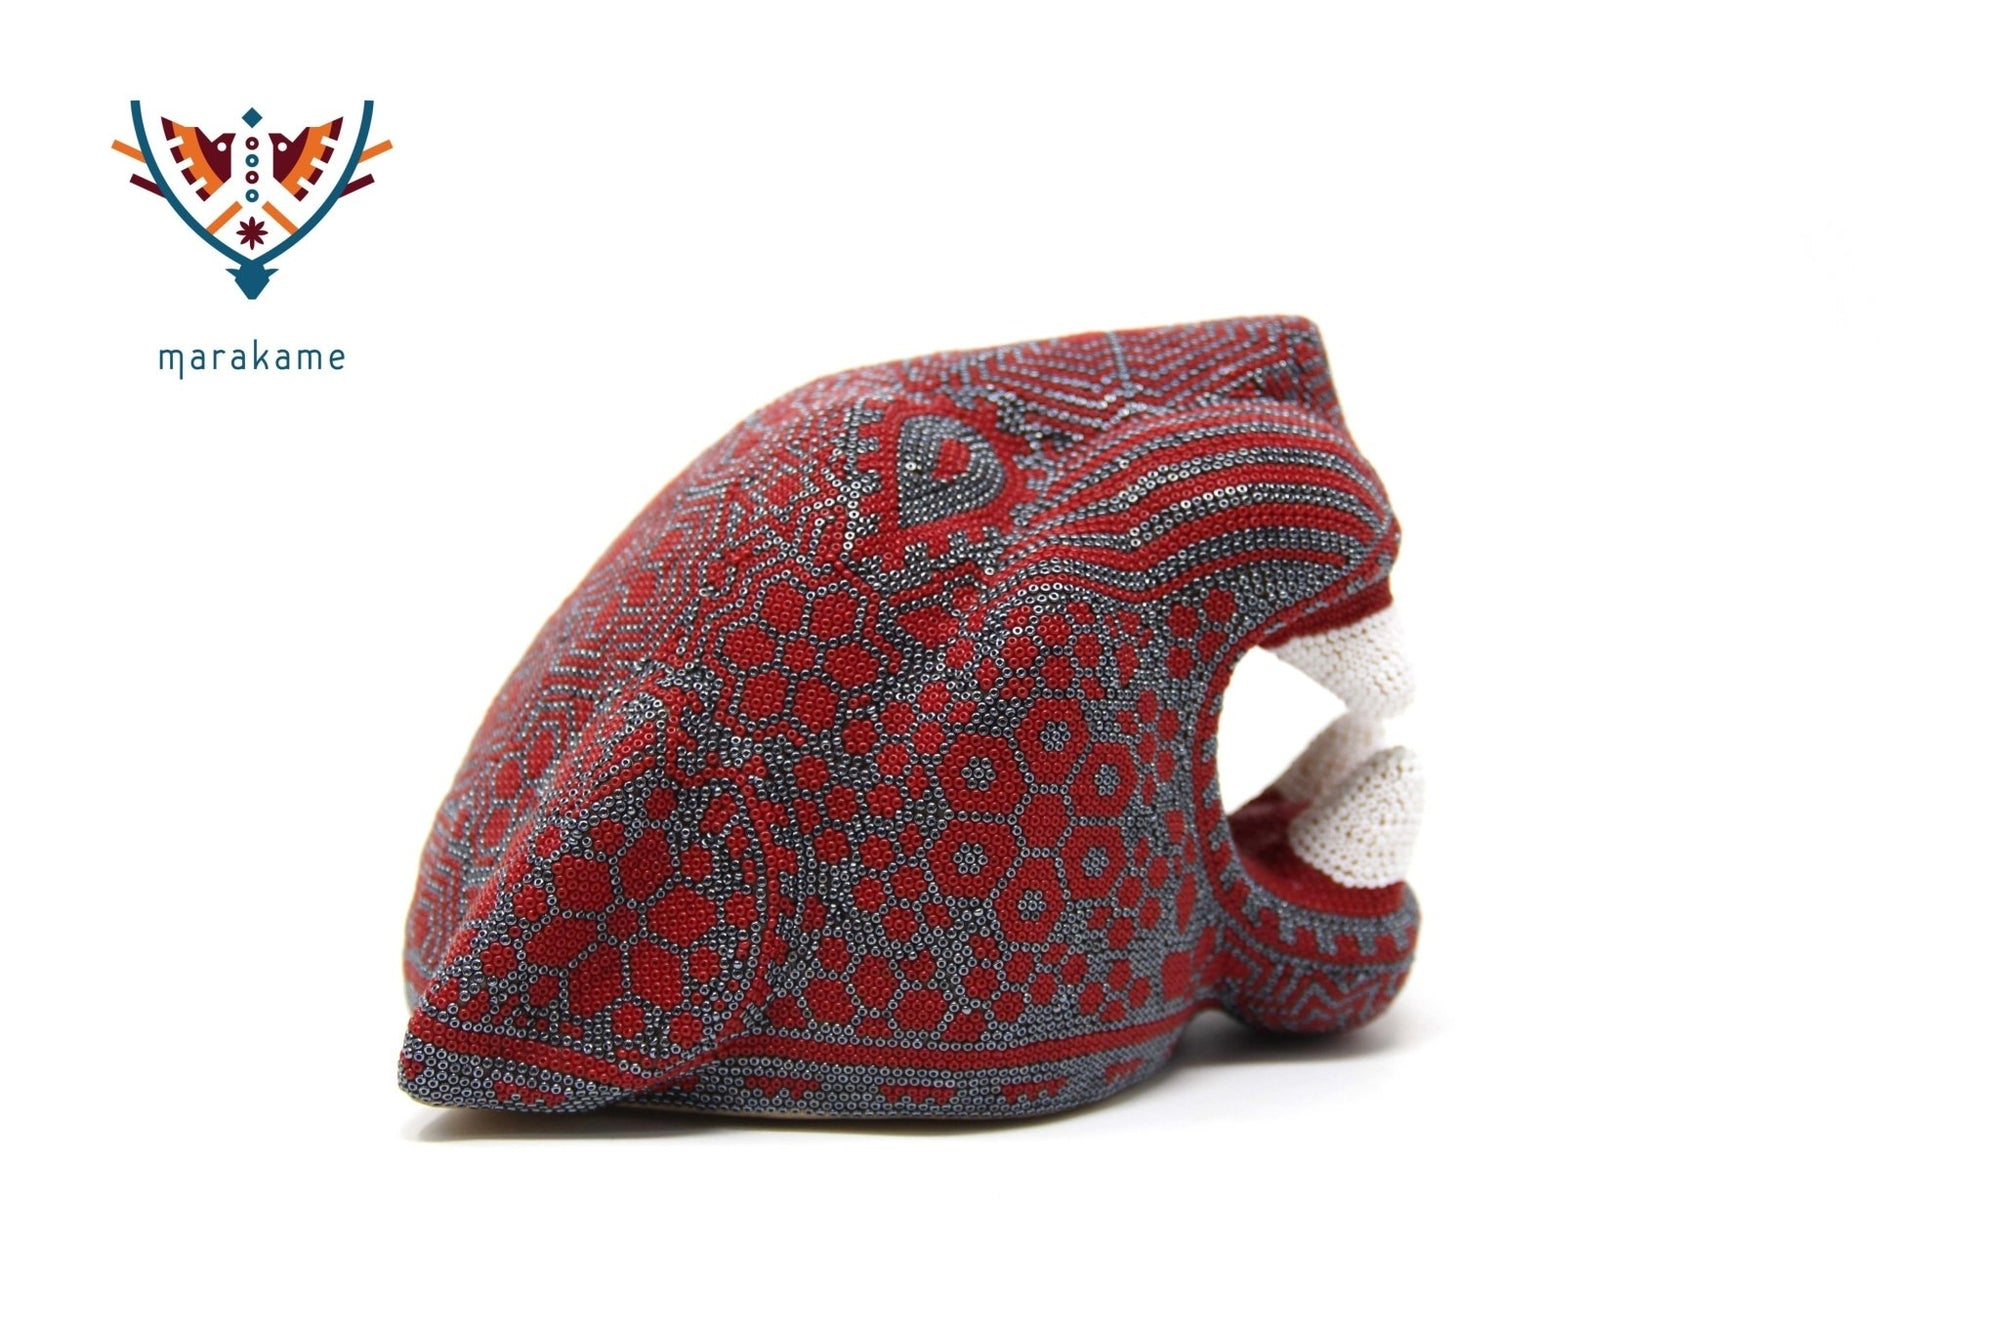 Copal Sculpture - Medium Jaguar Head VIII - Huichol Art - Marakame